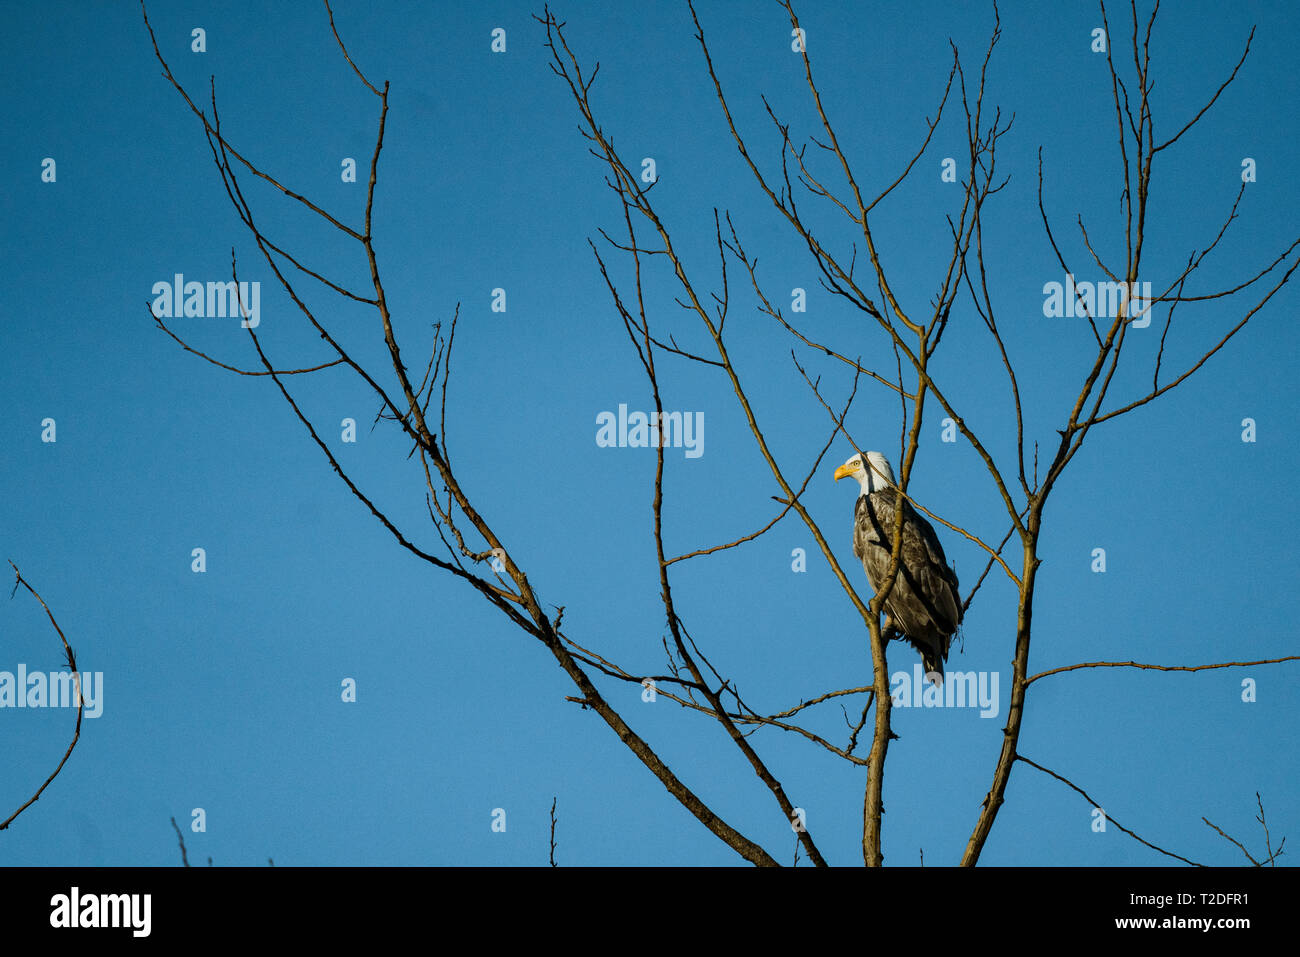 A partially leucistic bald eagle sits in a bare tree - Stock Image